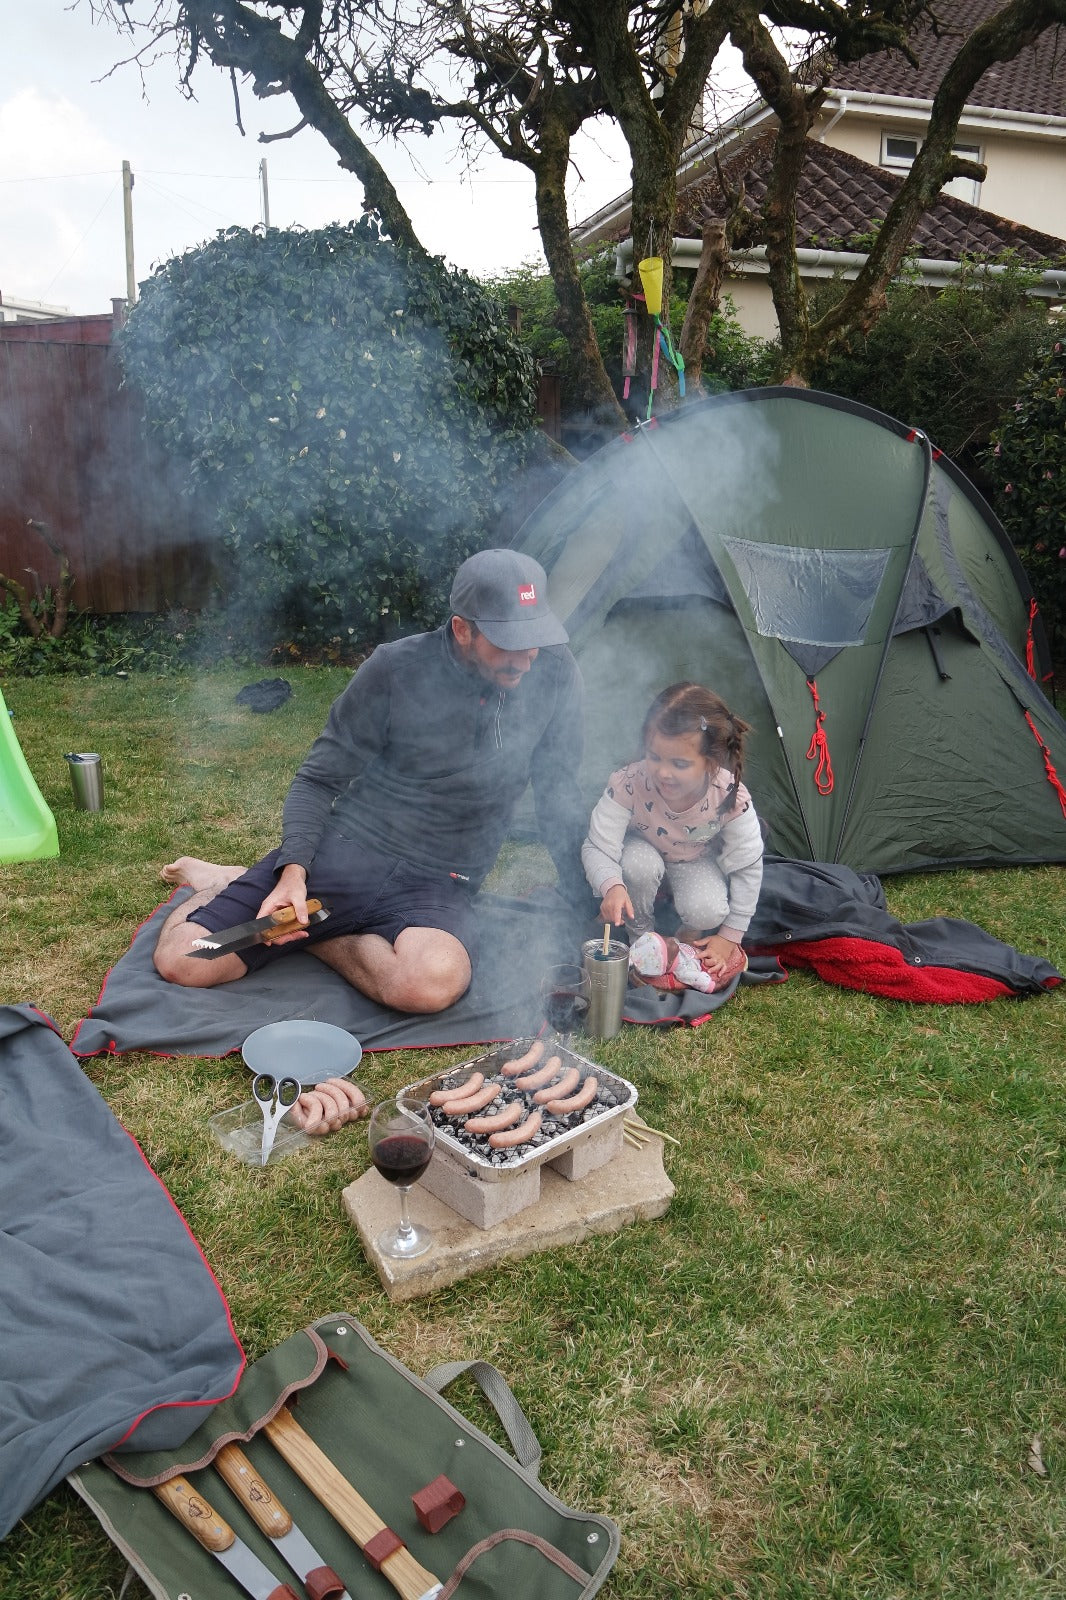 Father and daughter camping in the garden